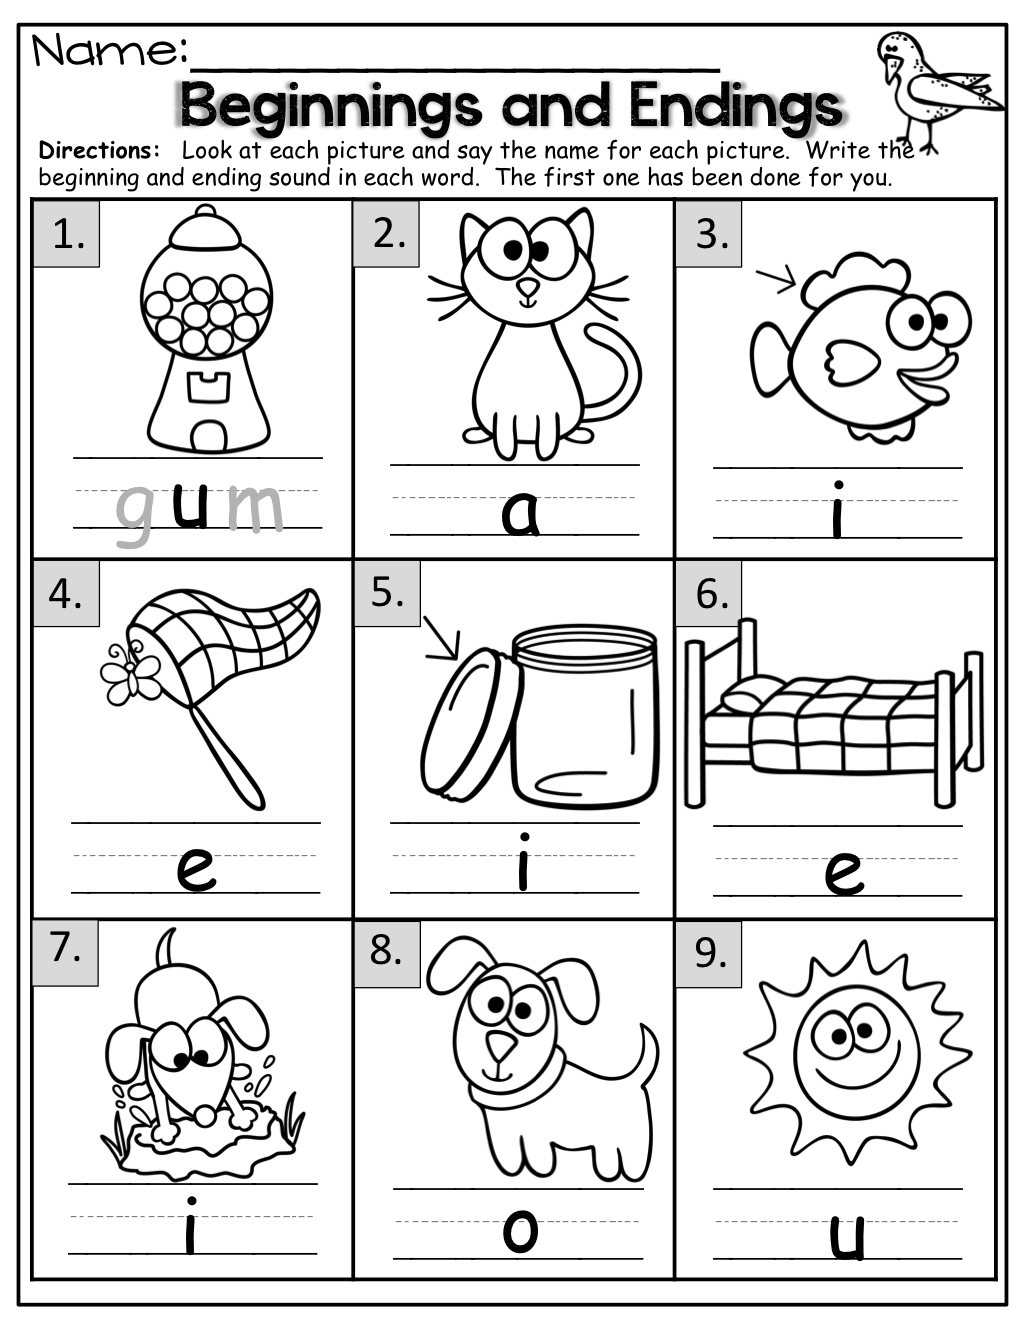 Kindergarten Bee Worksheet